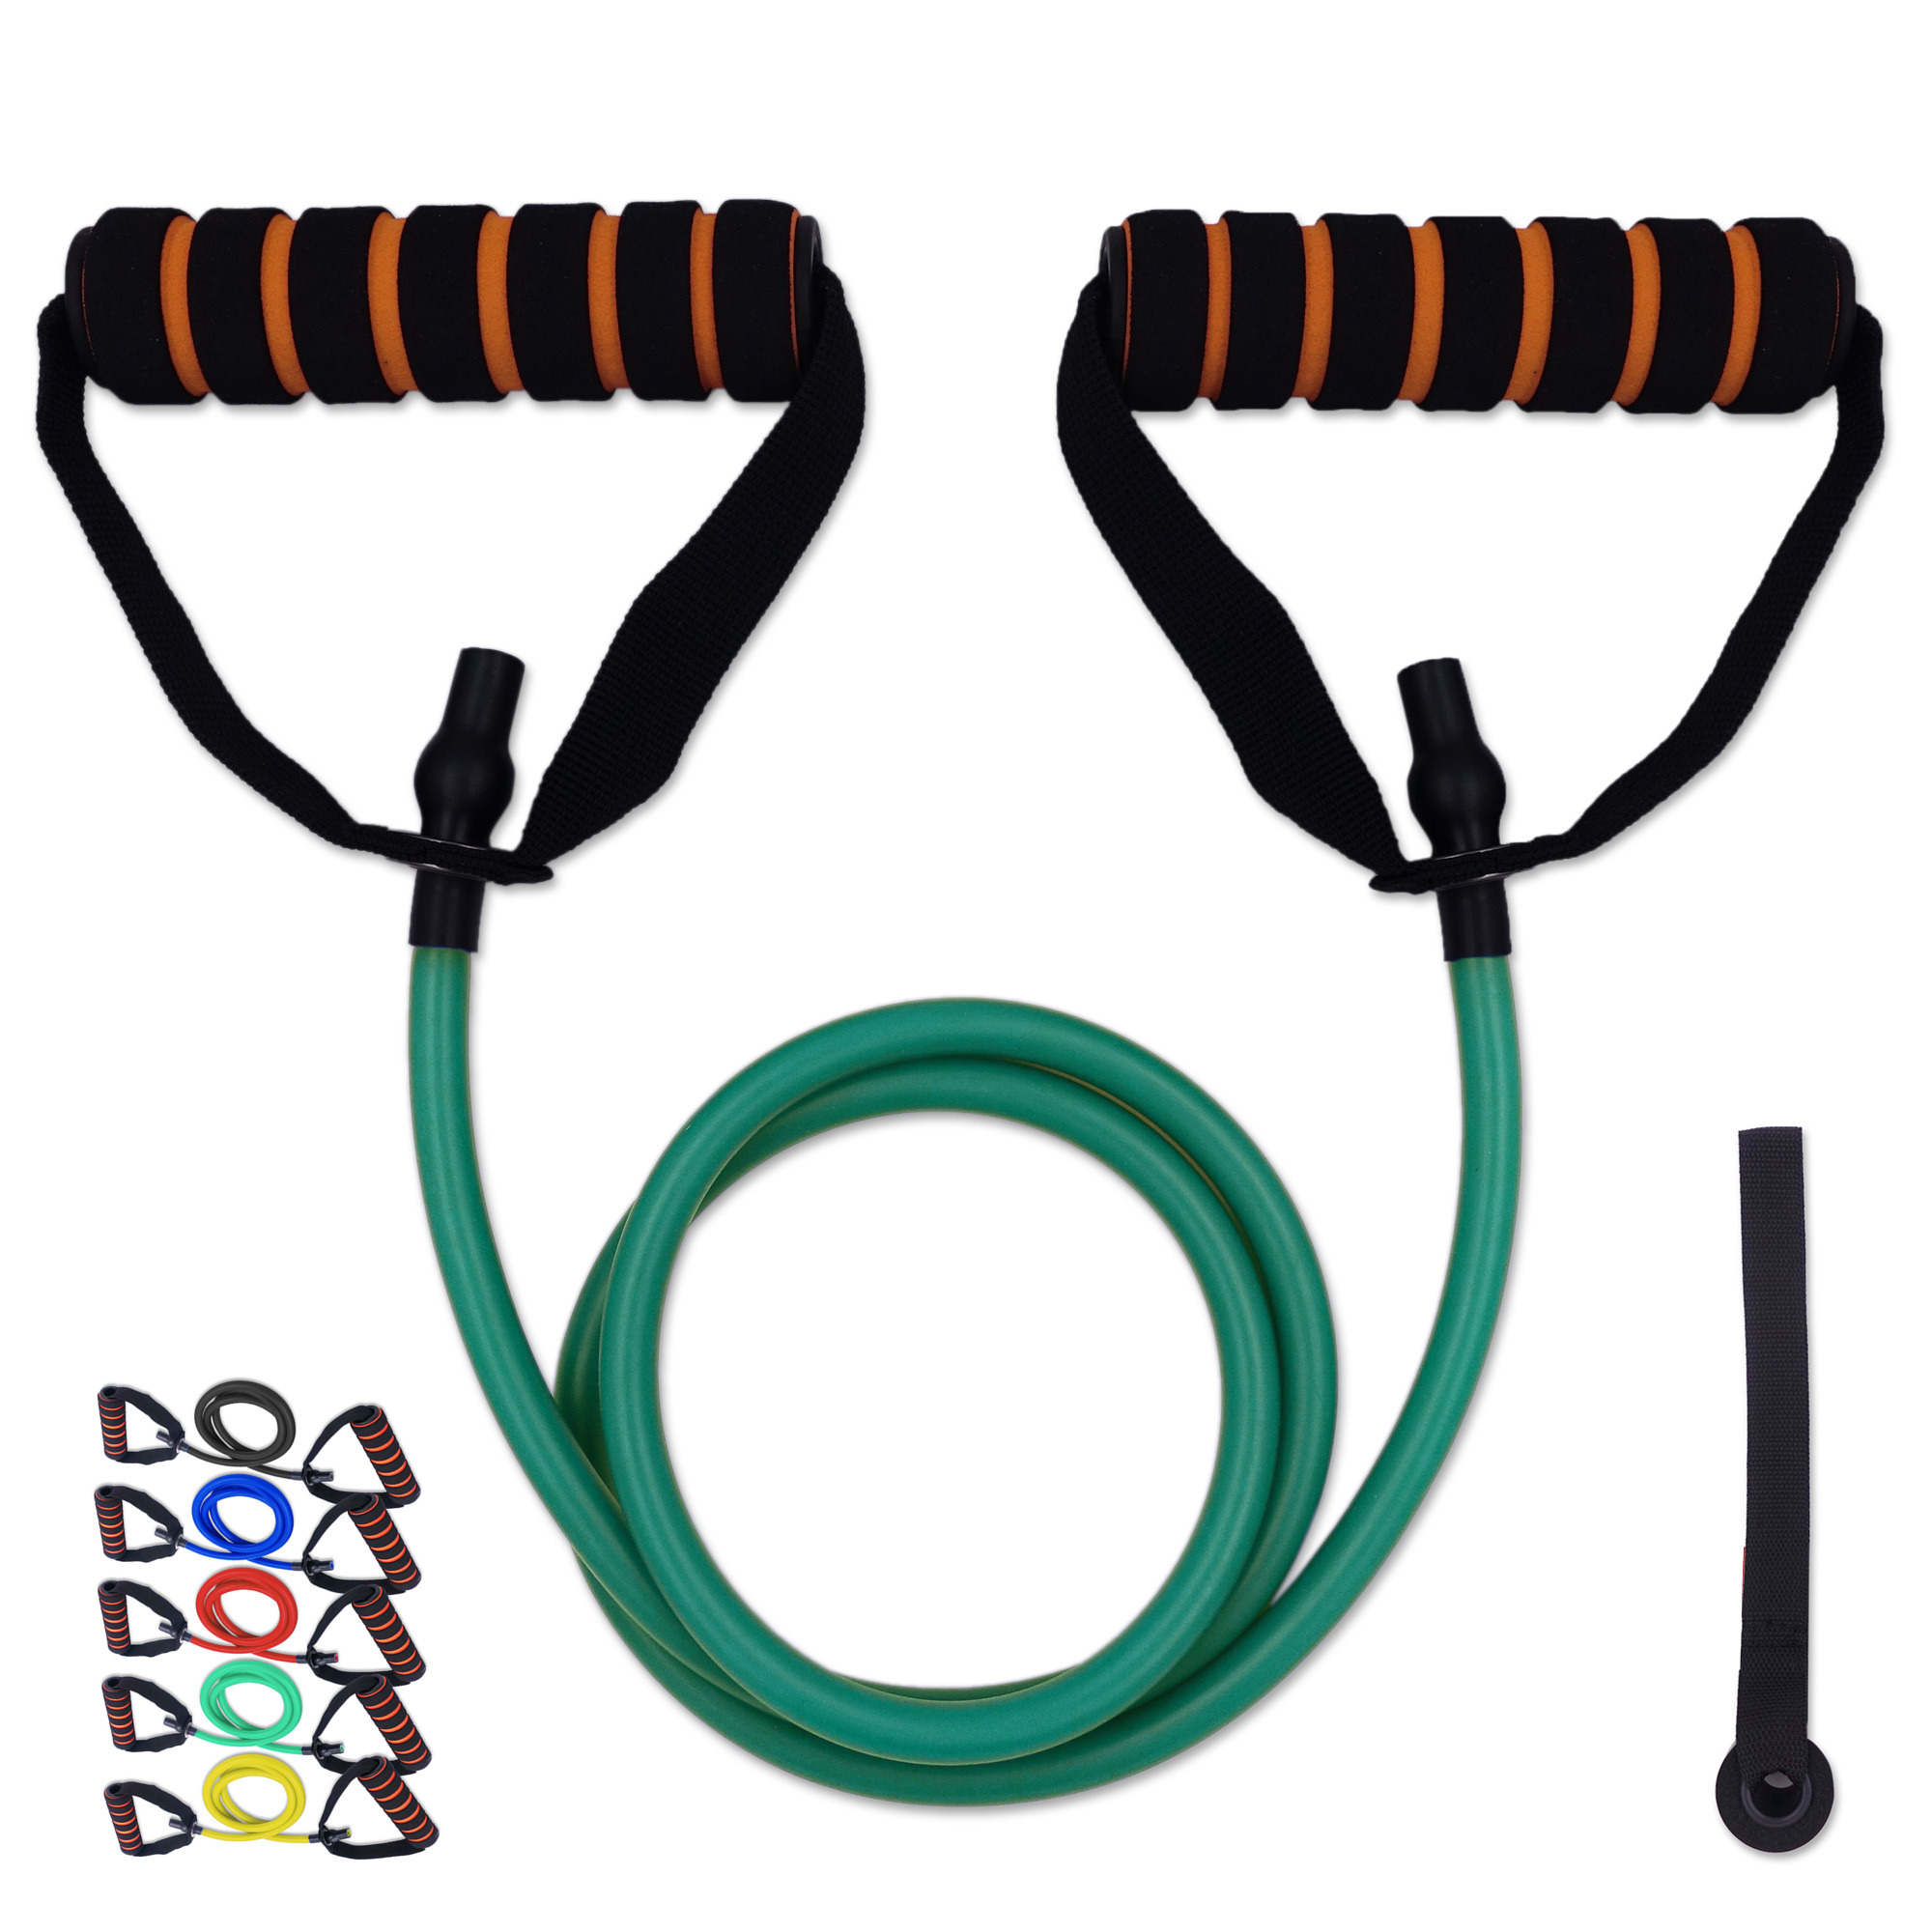 120cm Resistance Elastic Bands Tube With Foam Handles For Exercise Fitness Pilates Strength Training Home Gym Workout Equipments